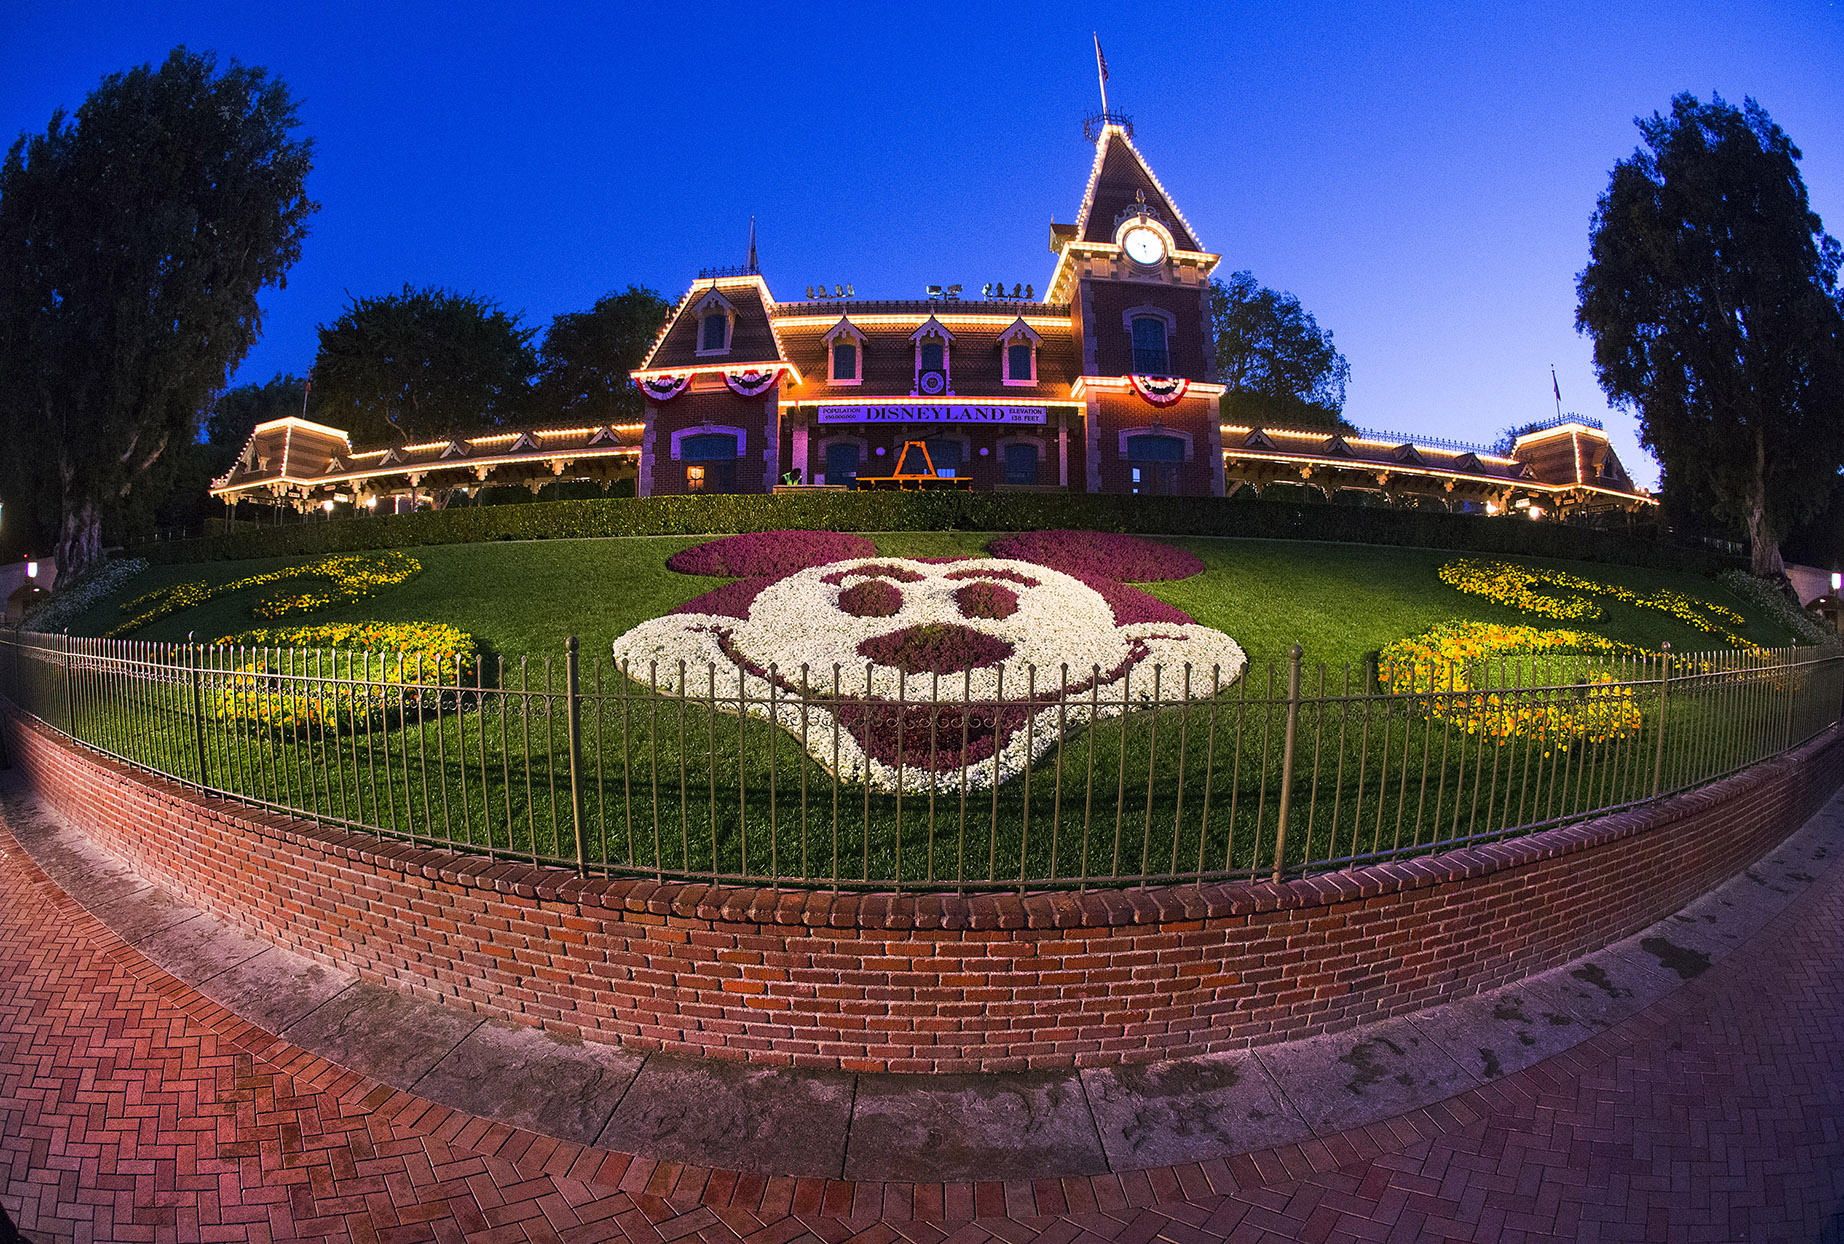 Mickey Mouse face made out of white and dark purple flowers in a flower bed at Disneyland